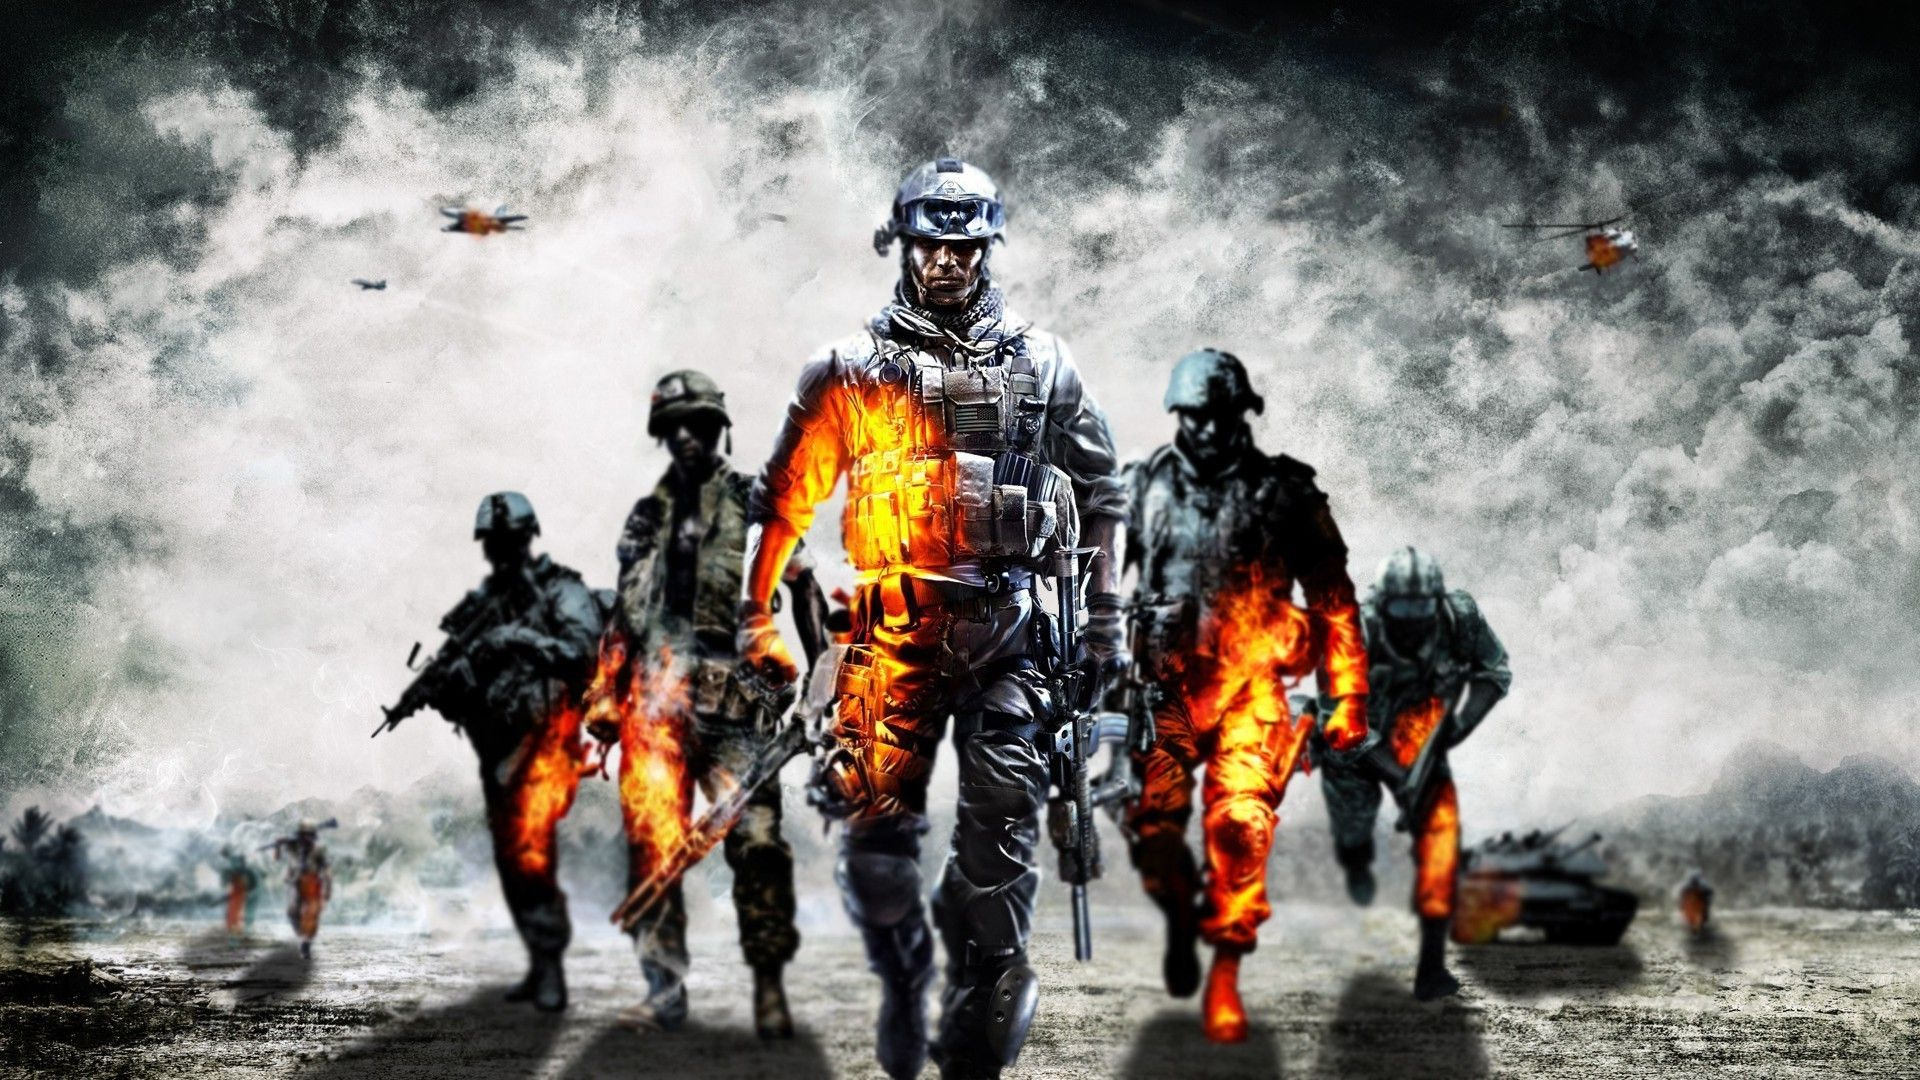 Undefined Cool Wallpaper For Iphone 40 Wallpapers: Undefined Battlefield 4 HD Wallpapers (40 Wallpapers